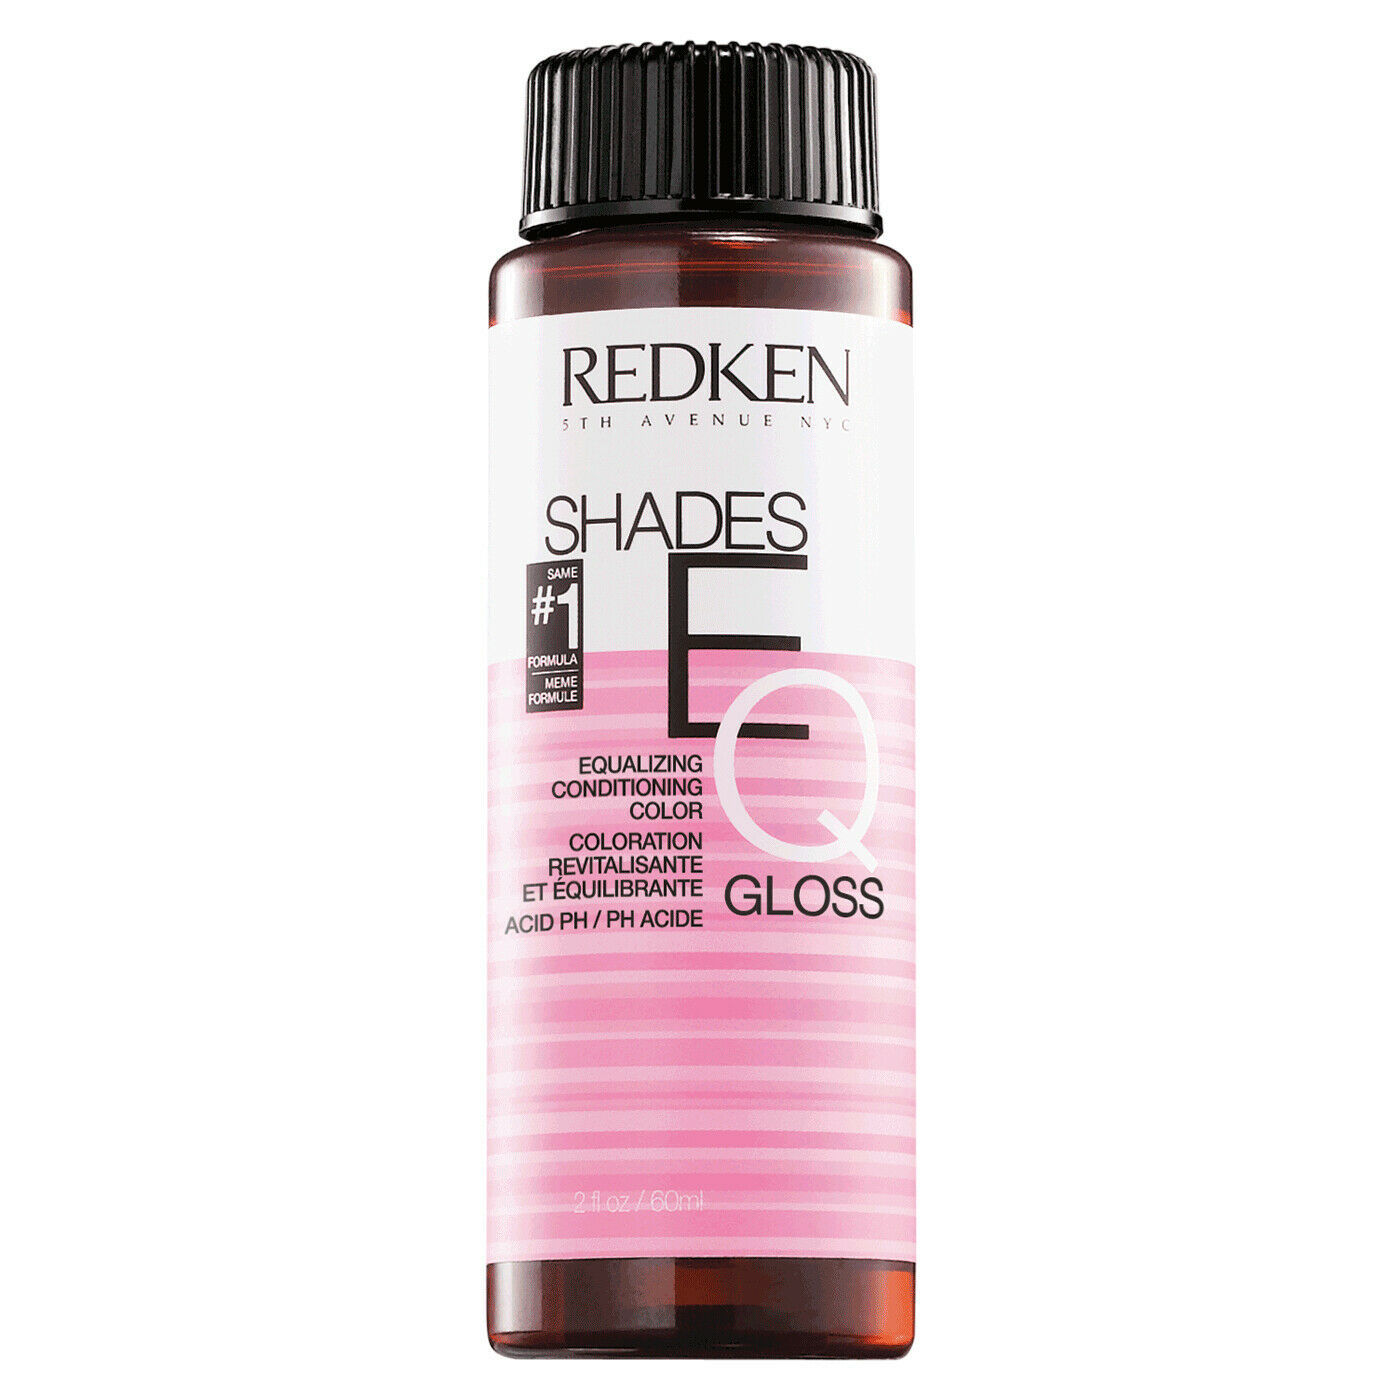 Redken Shades EQ Gloss Equalizing Conditioning Hair Color 2oz 09T CHROME - $11.85